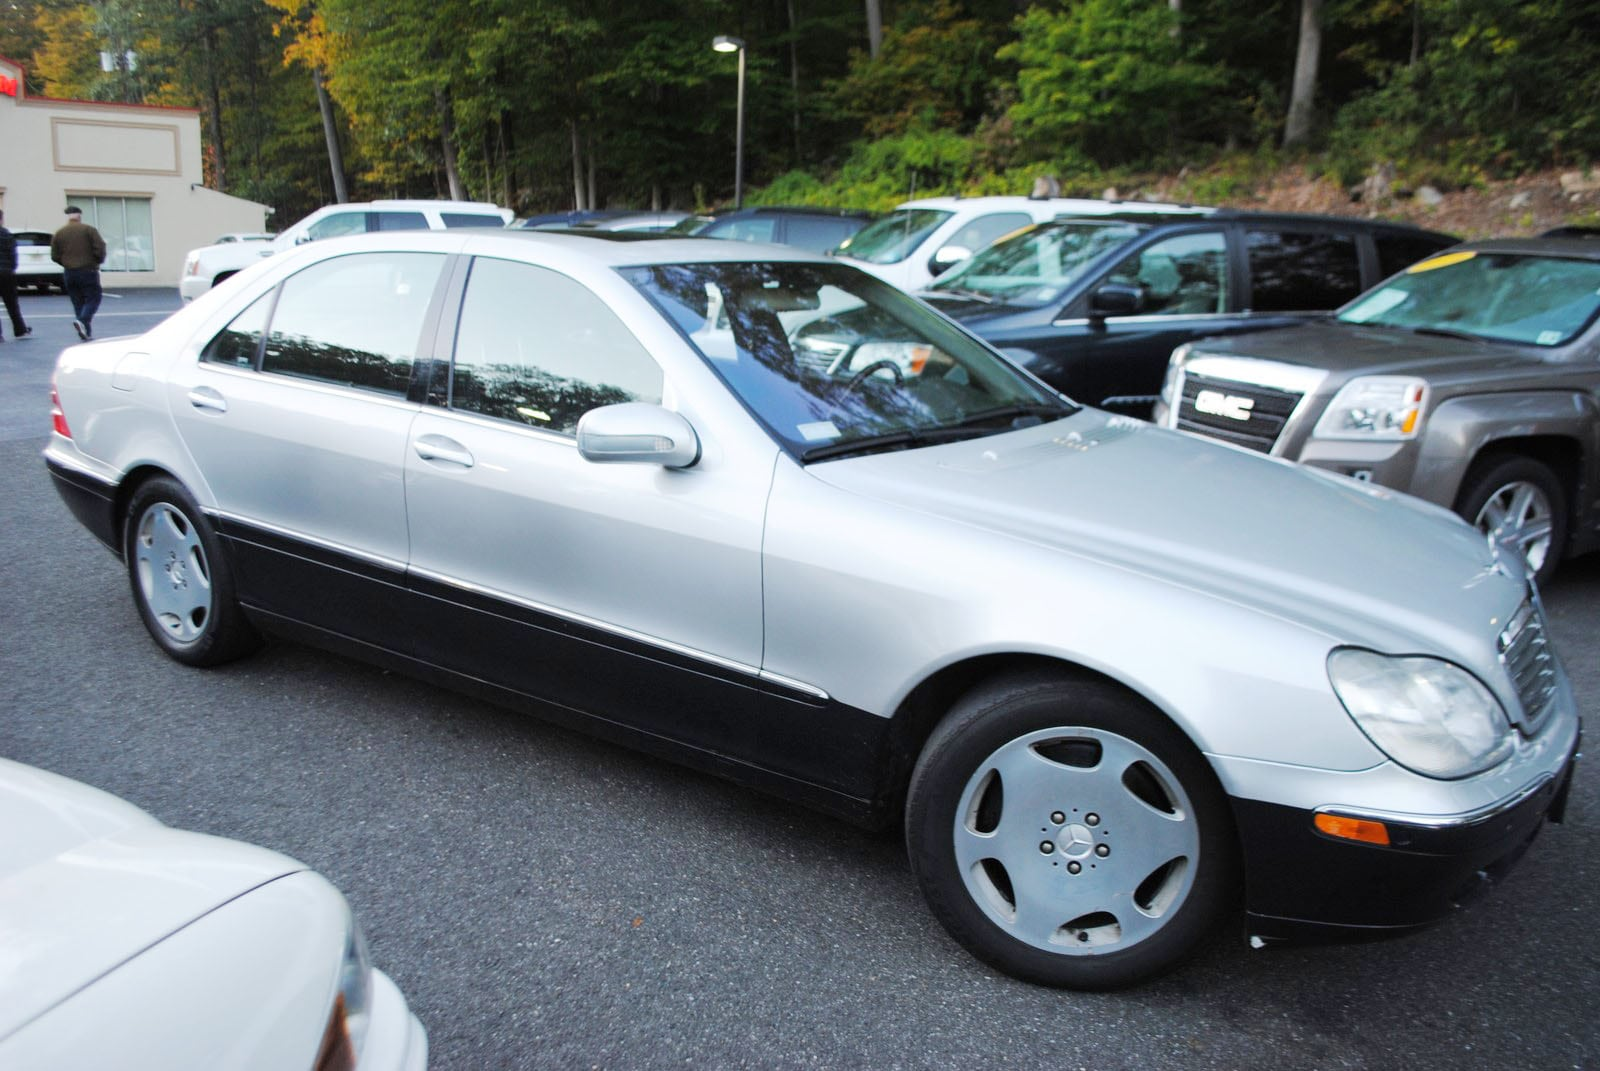 Used 2001 mercedes benz s class for sale west milford nj for 2001 mercedes benz s500 specs